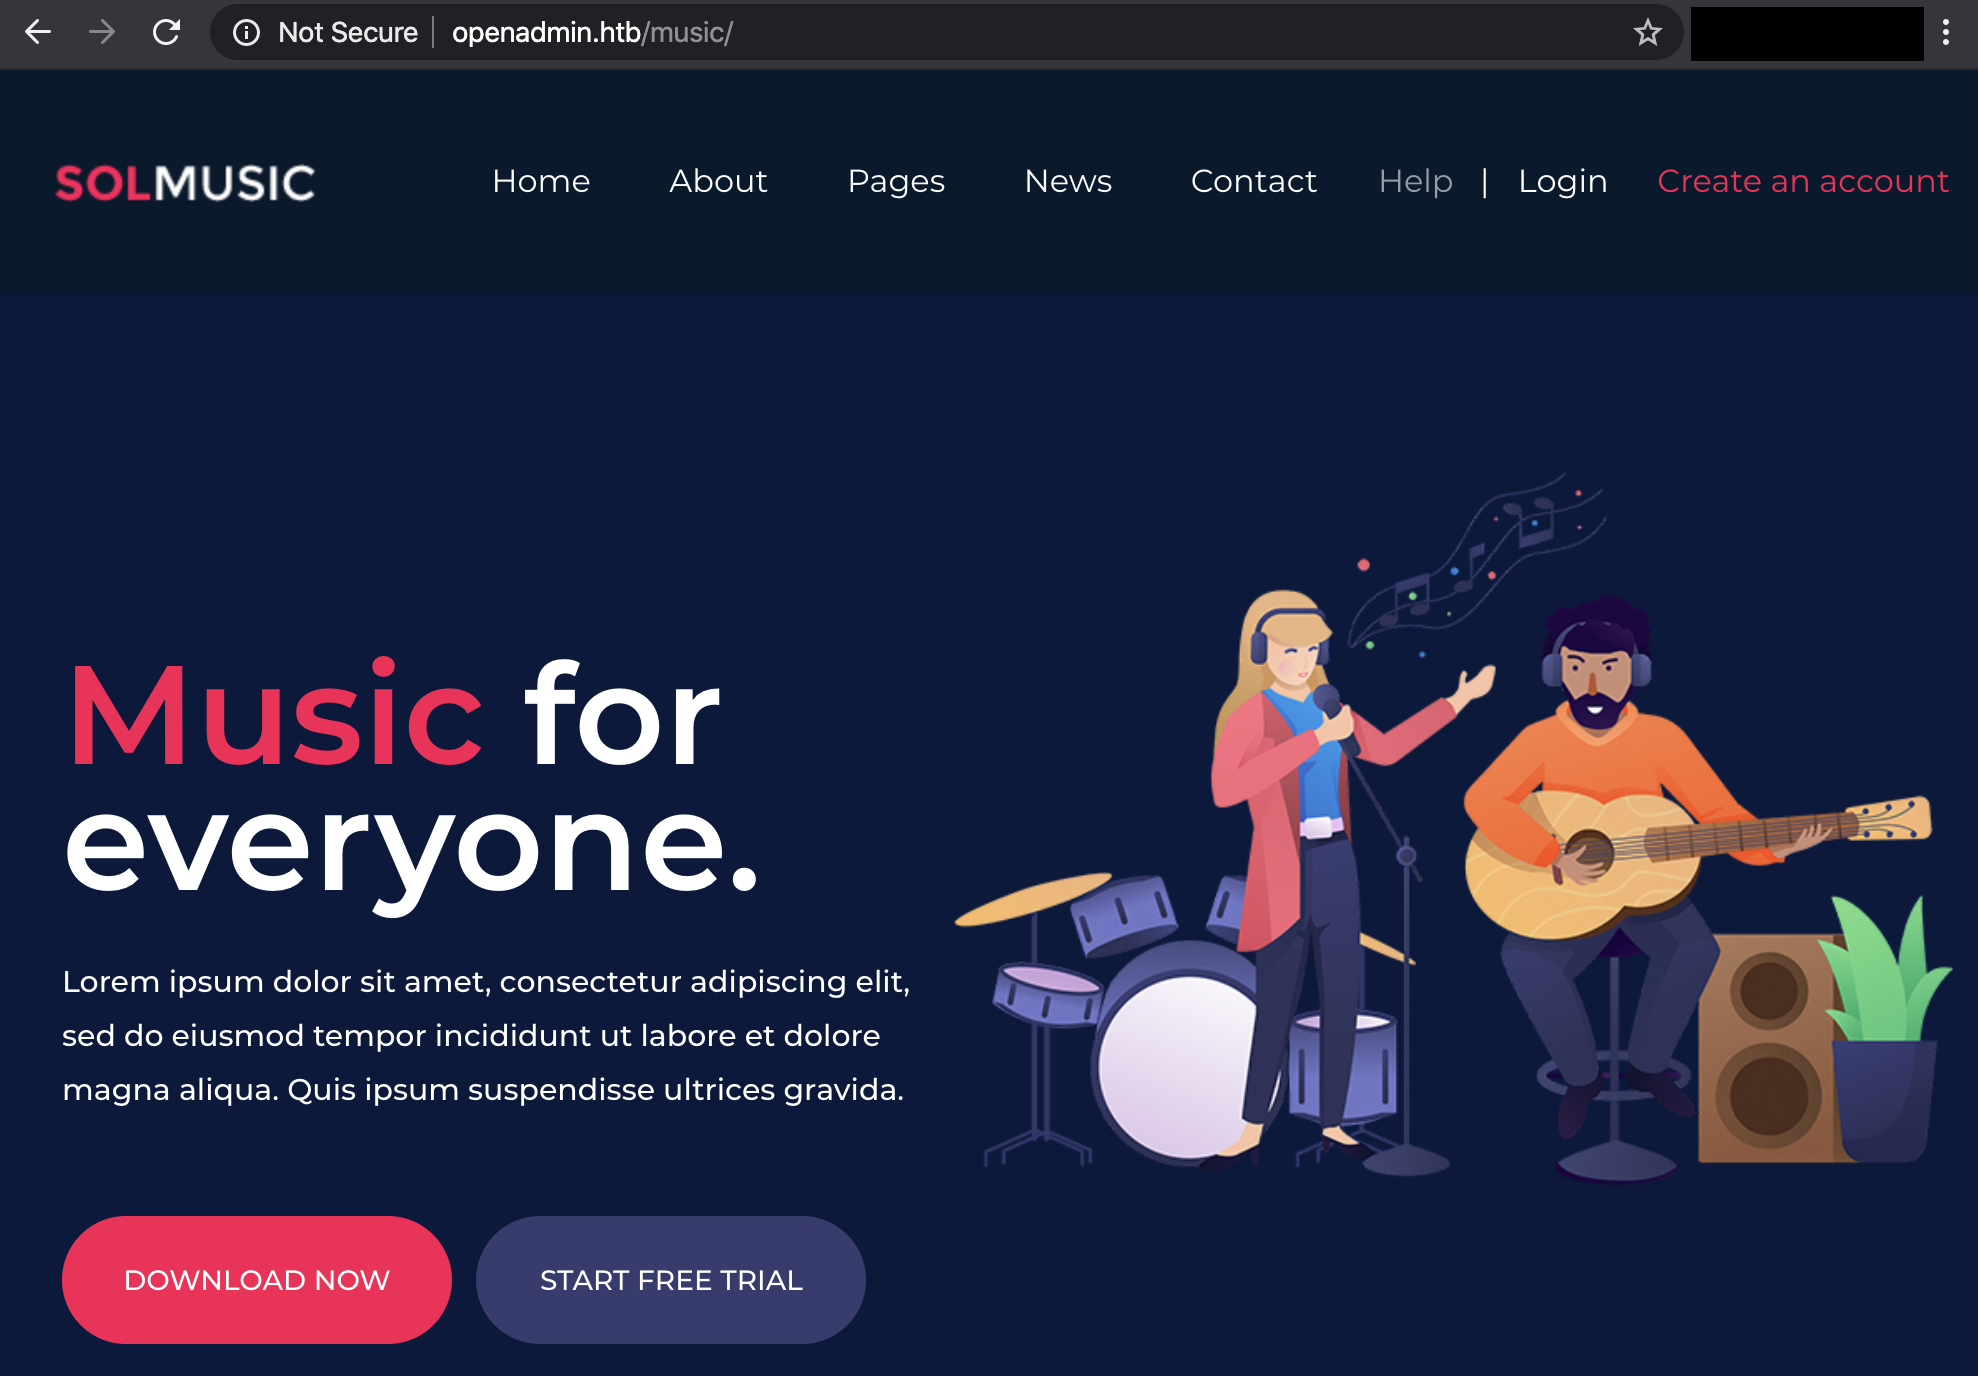 music website hackthebox